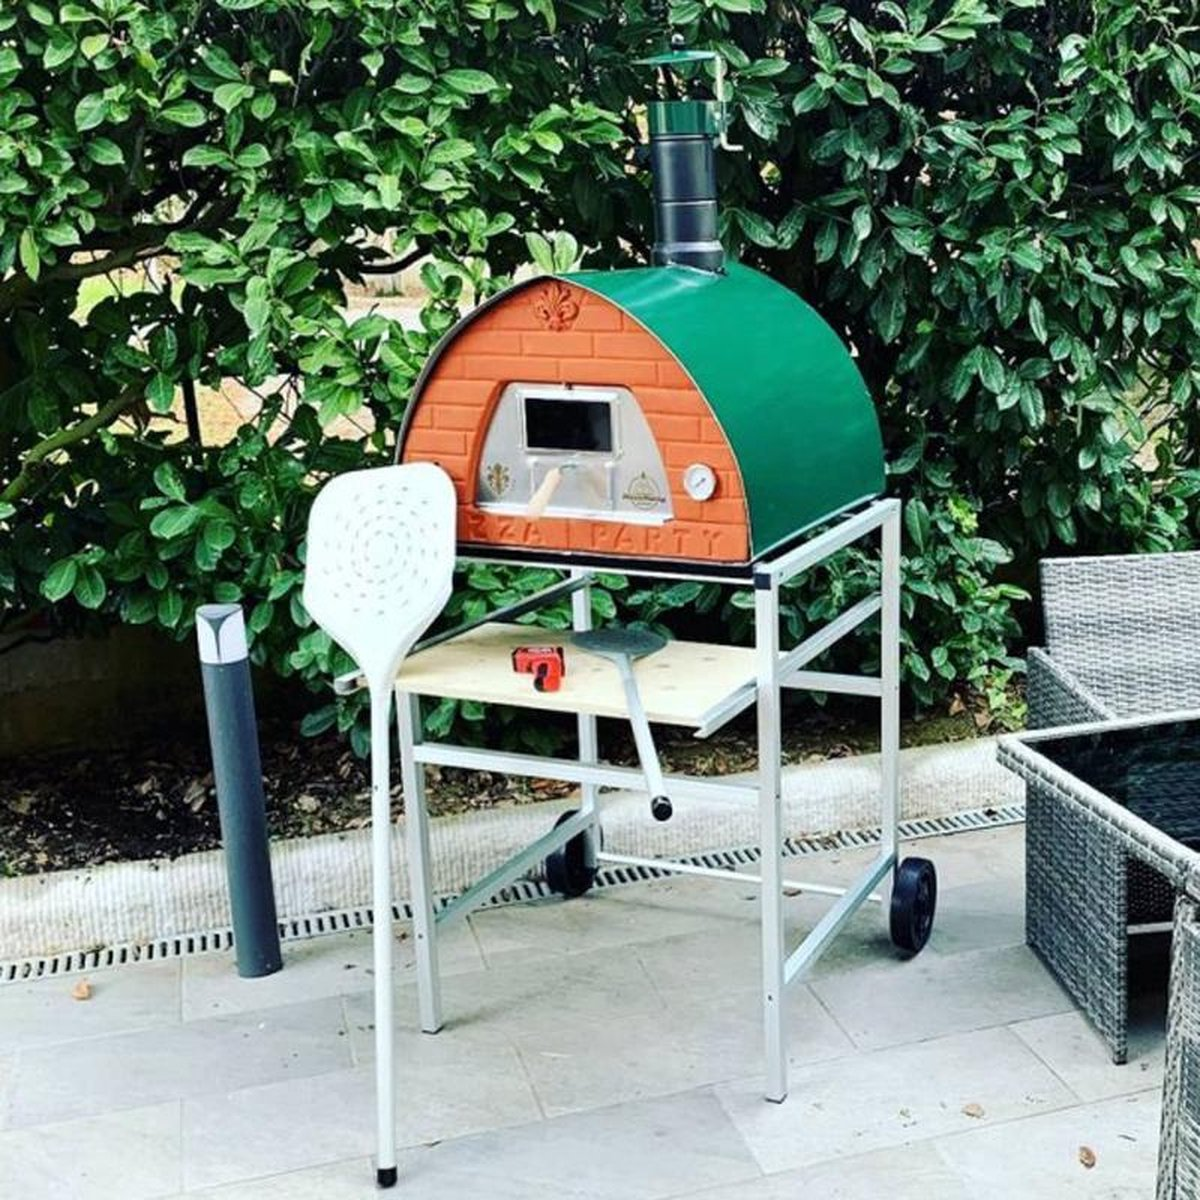 Pizza Party - Houtgestookte Pizzaoven - 70 x 70 - Groen